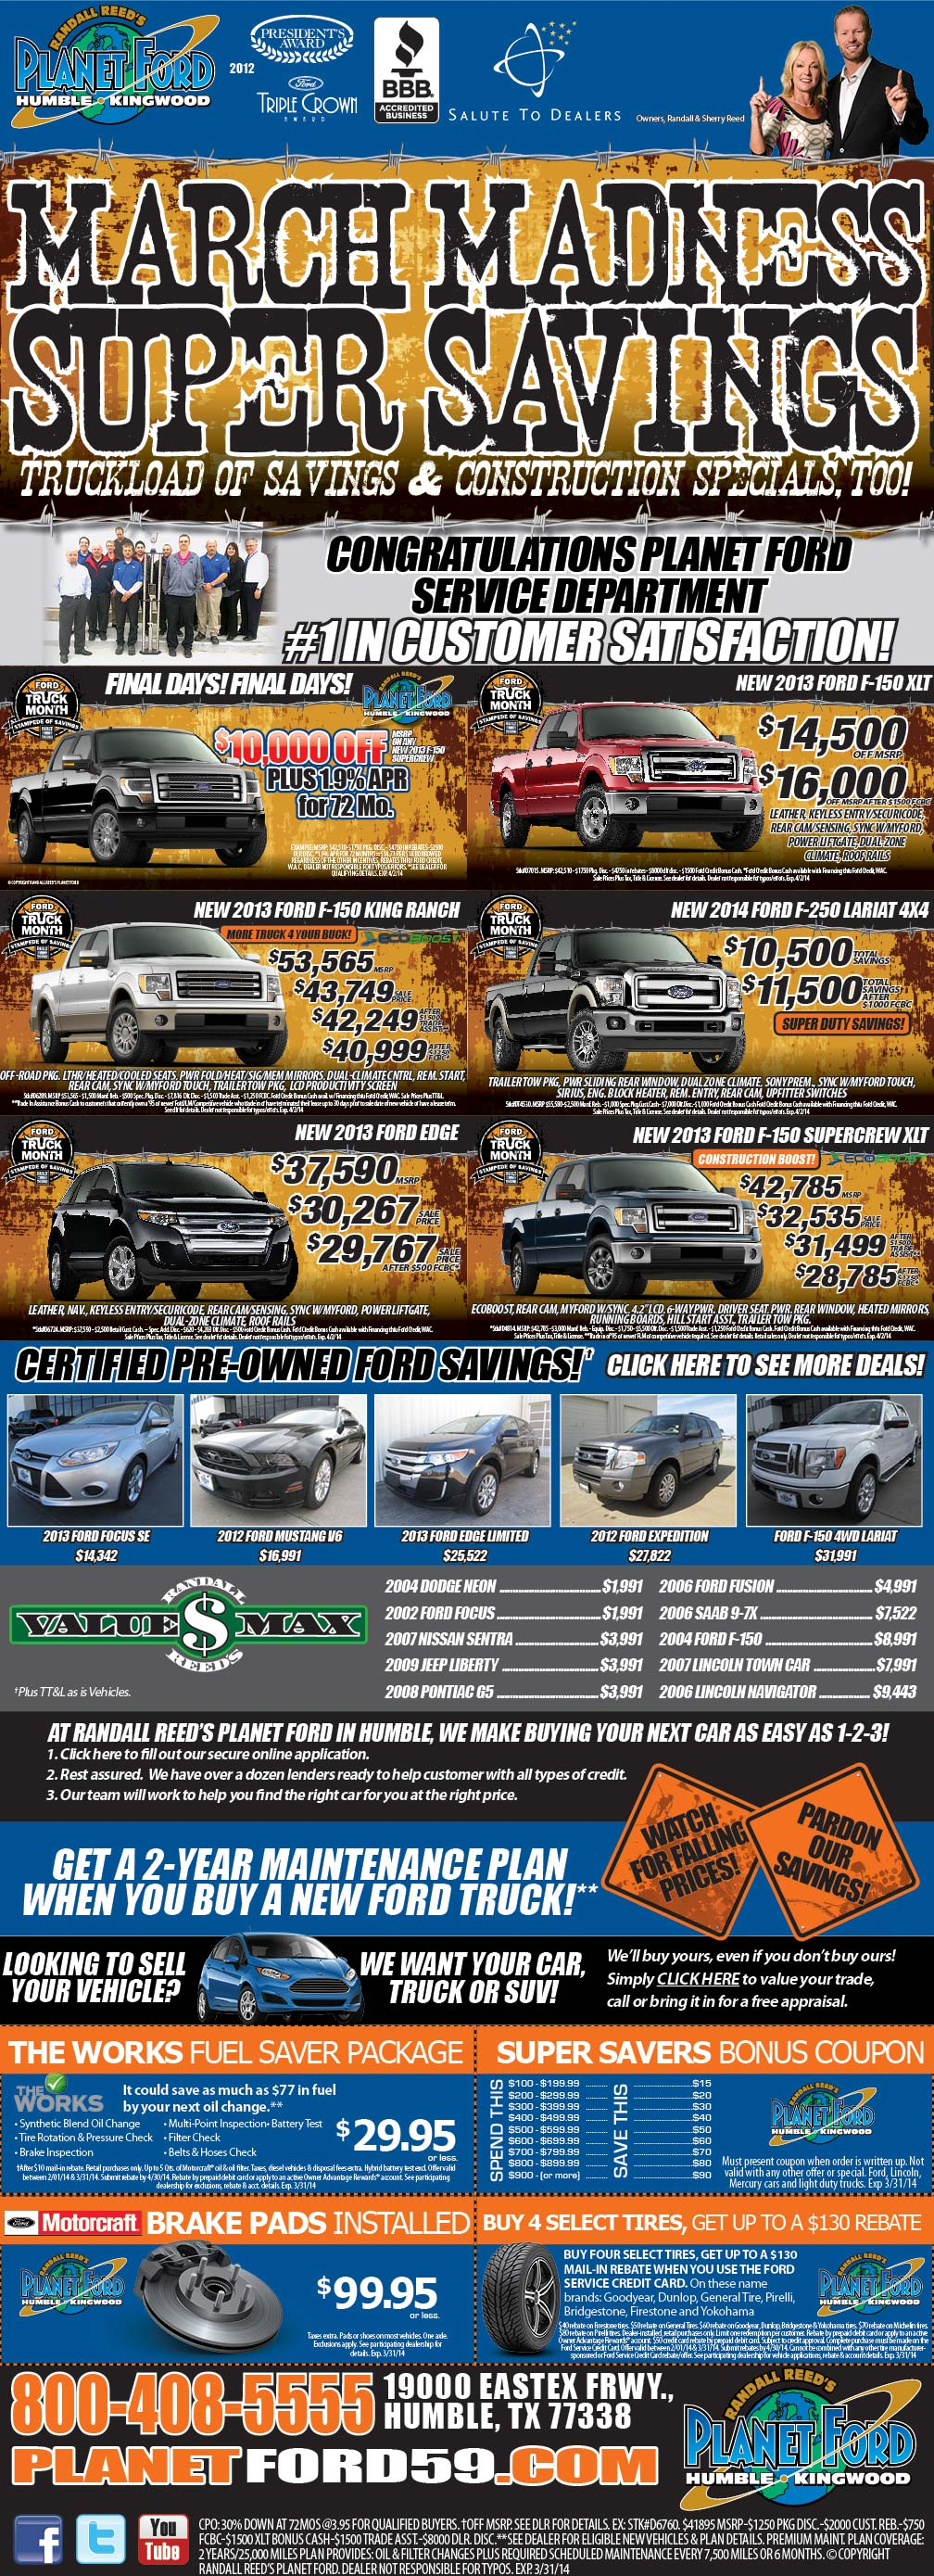 PLANET-FORD-HUMBLEmarch madness savings